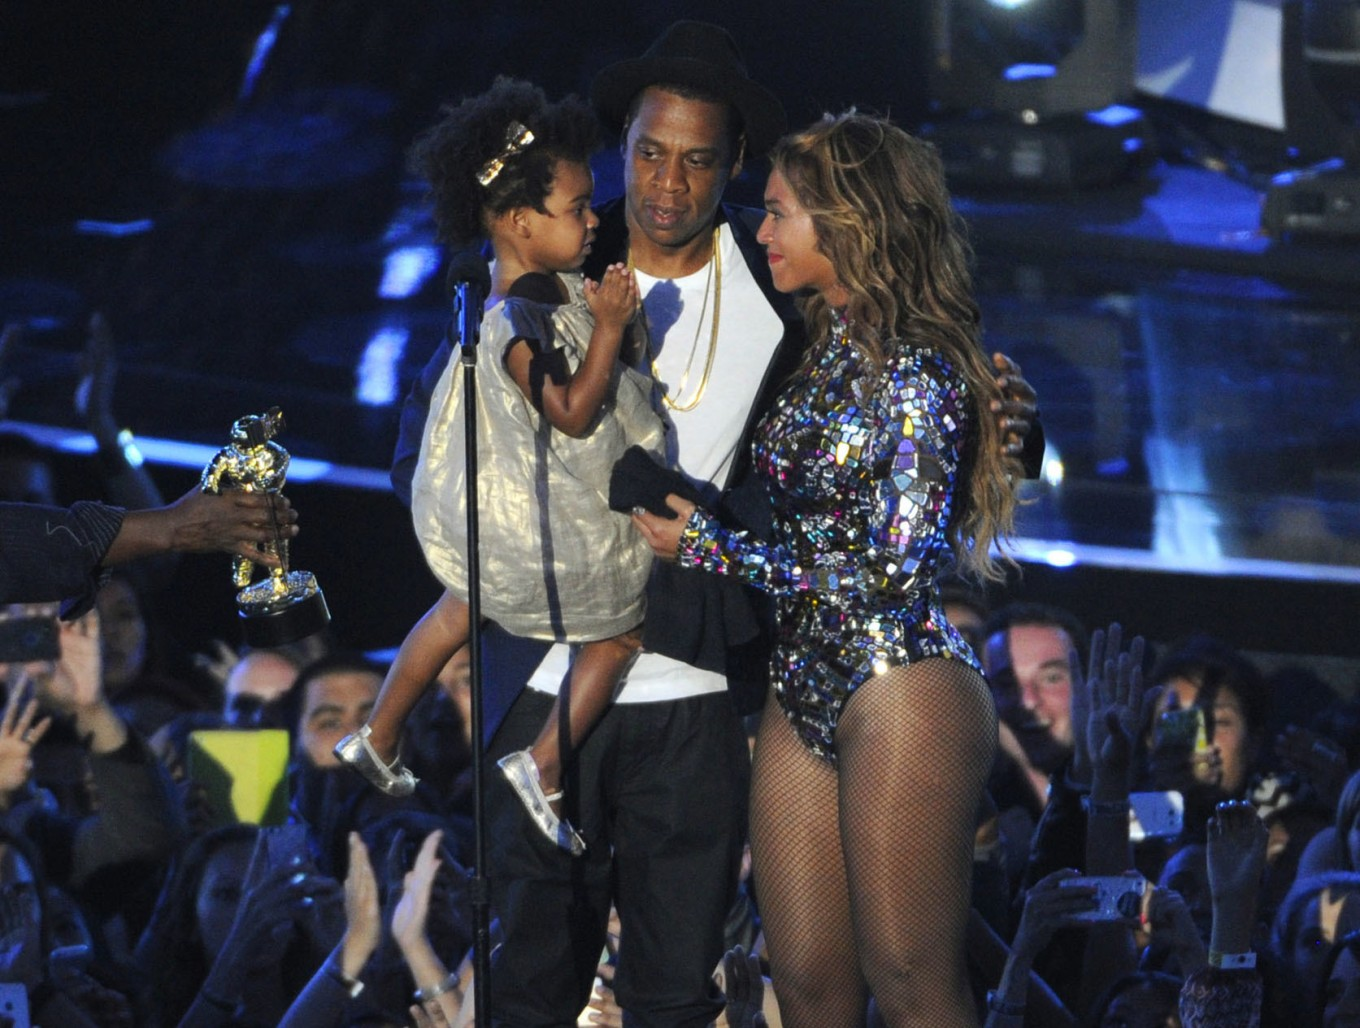 Beyonce announces she's pregnant with twins on Instagram